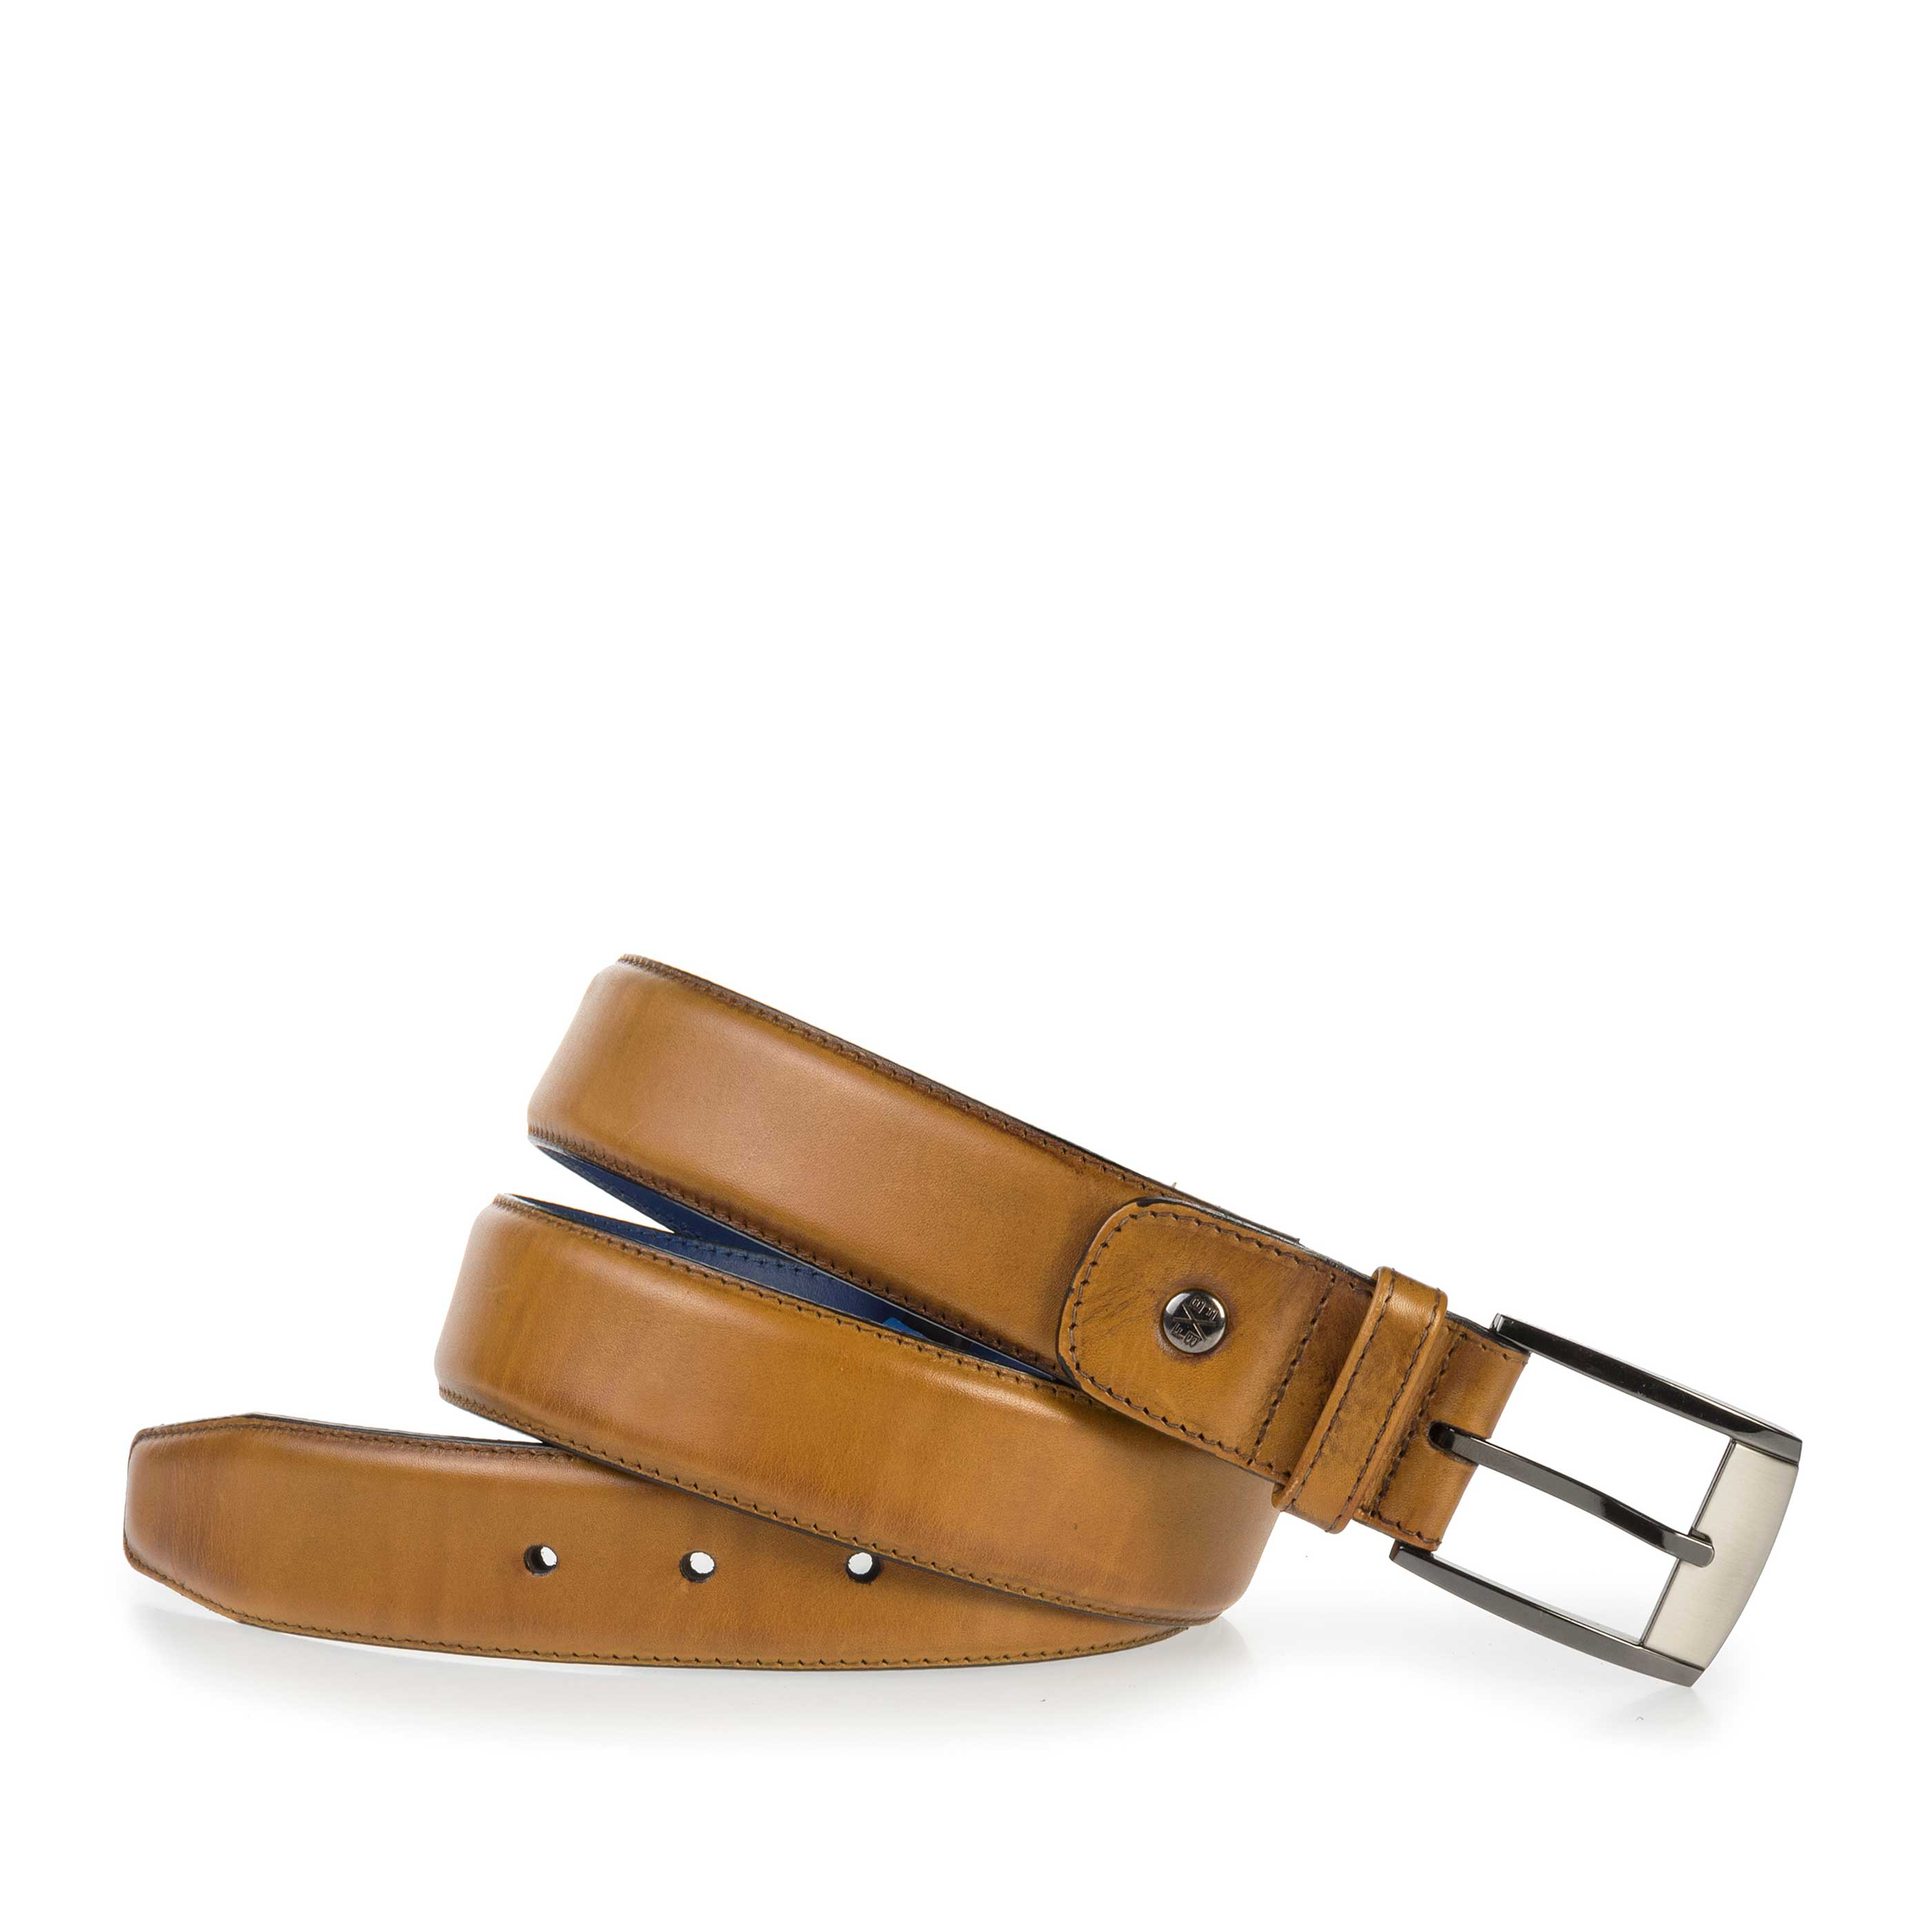 75183/02 - Cognac-coloured calf's leather belt